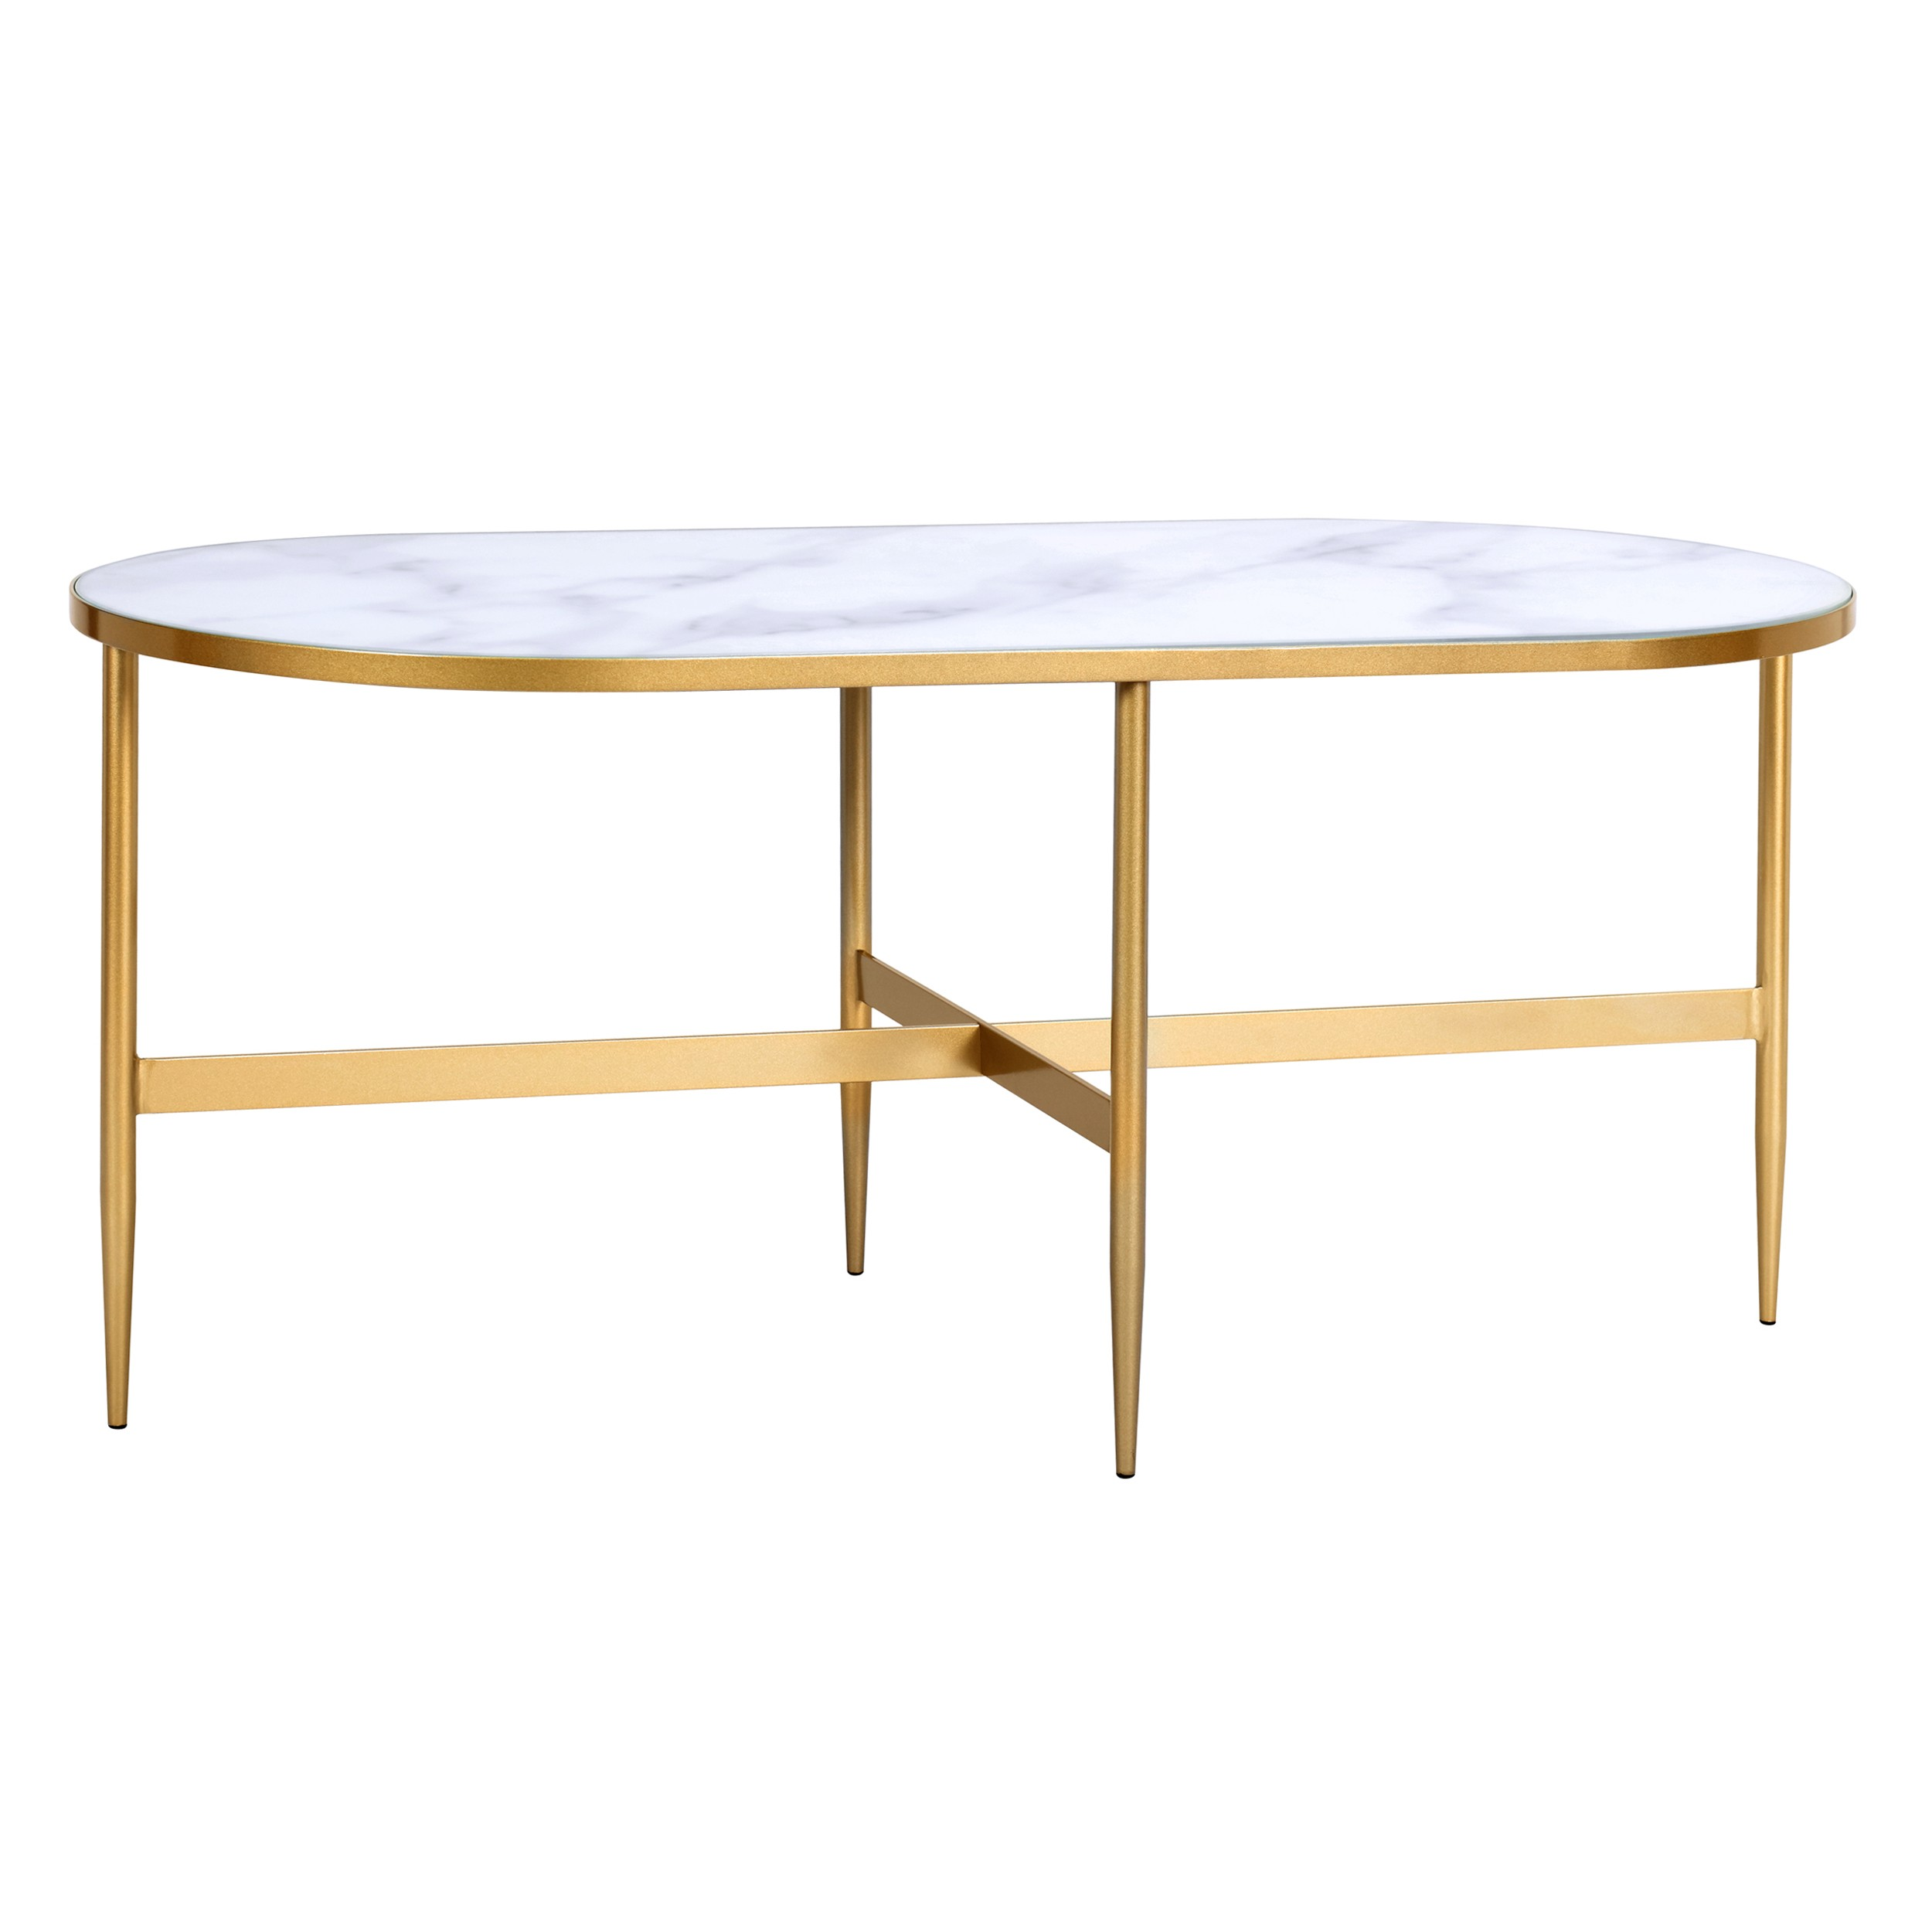 acheter table basse ovale pieds dores metal